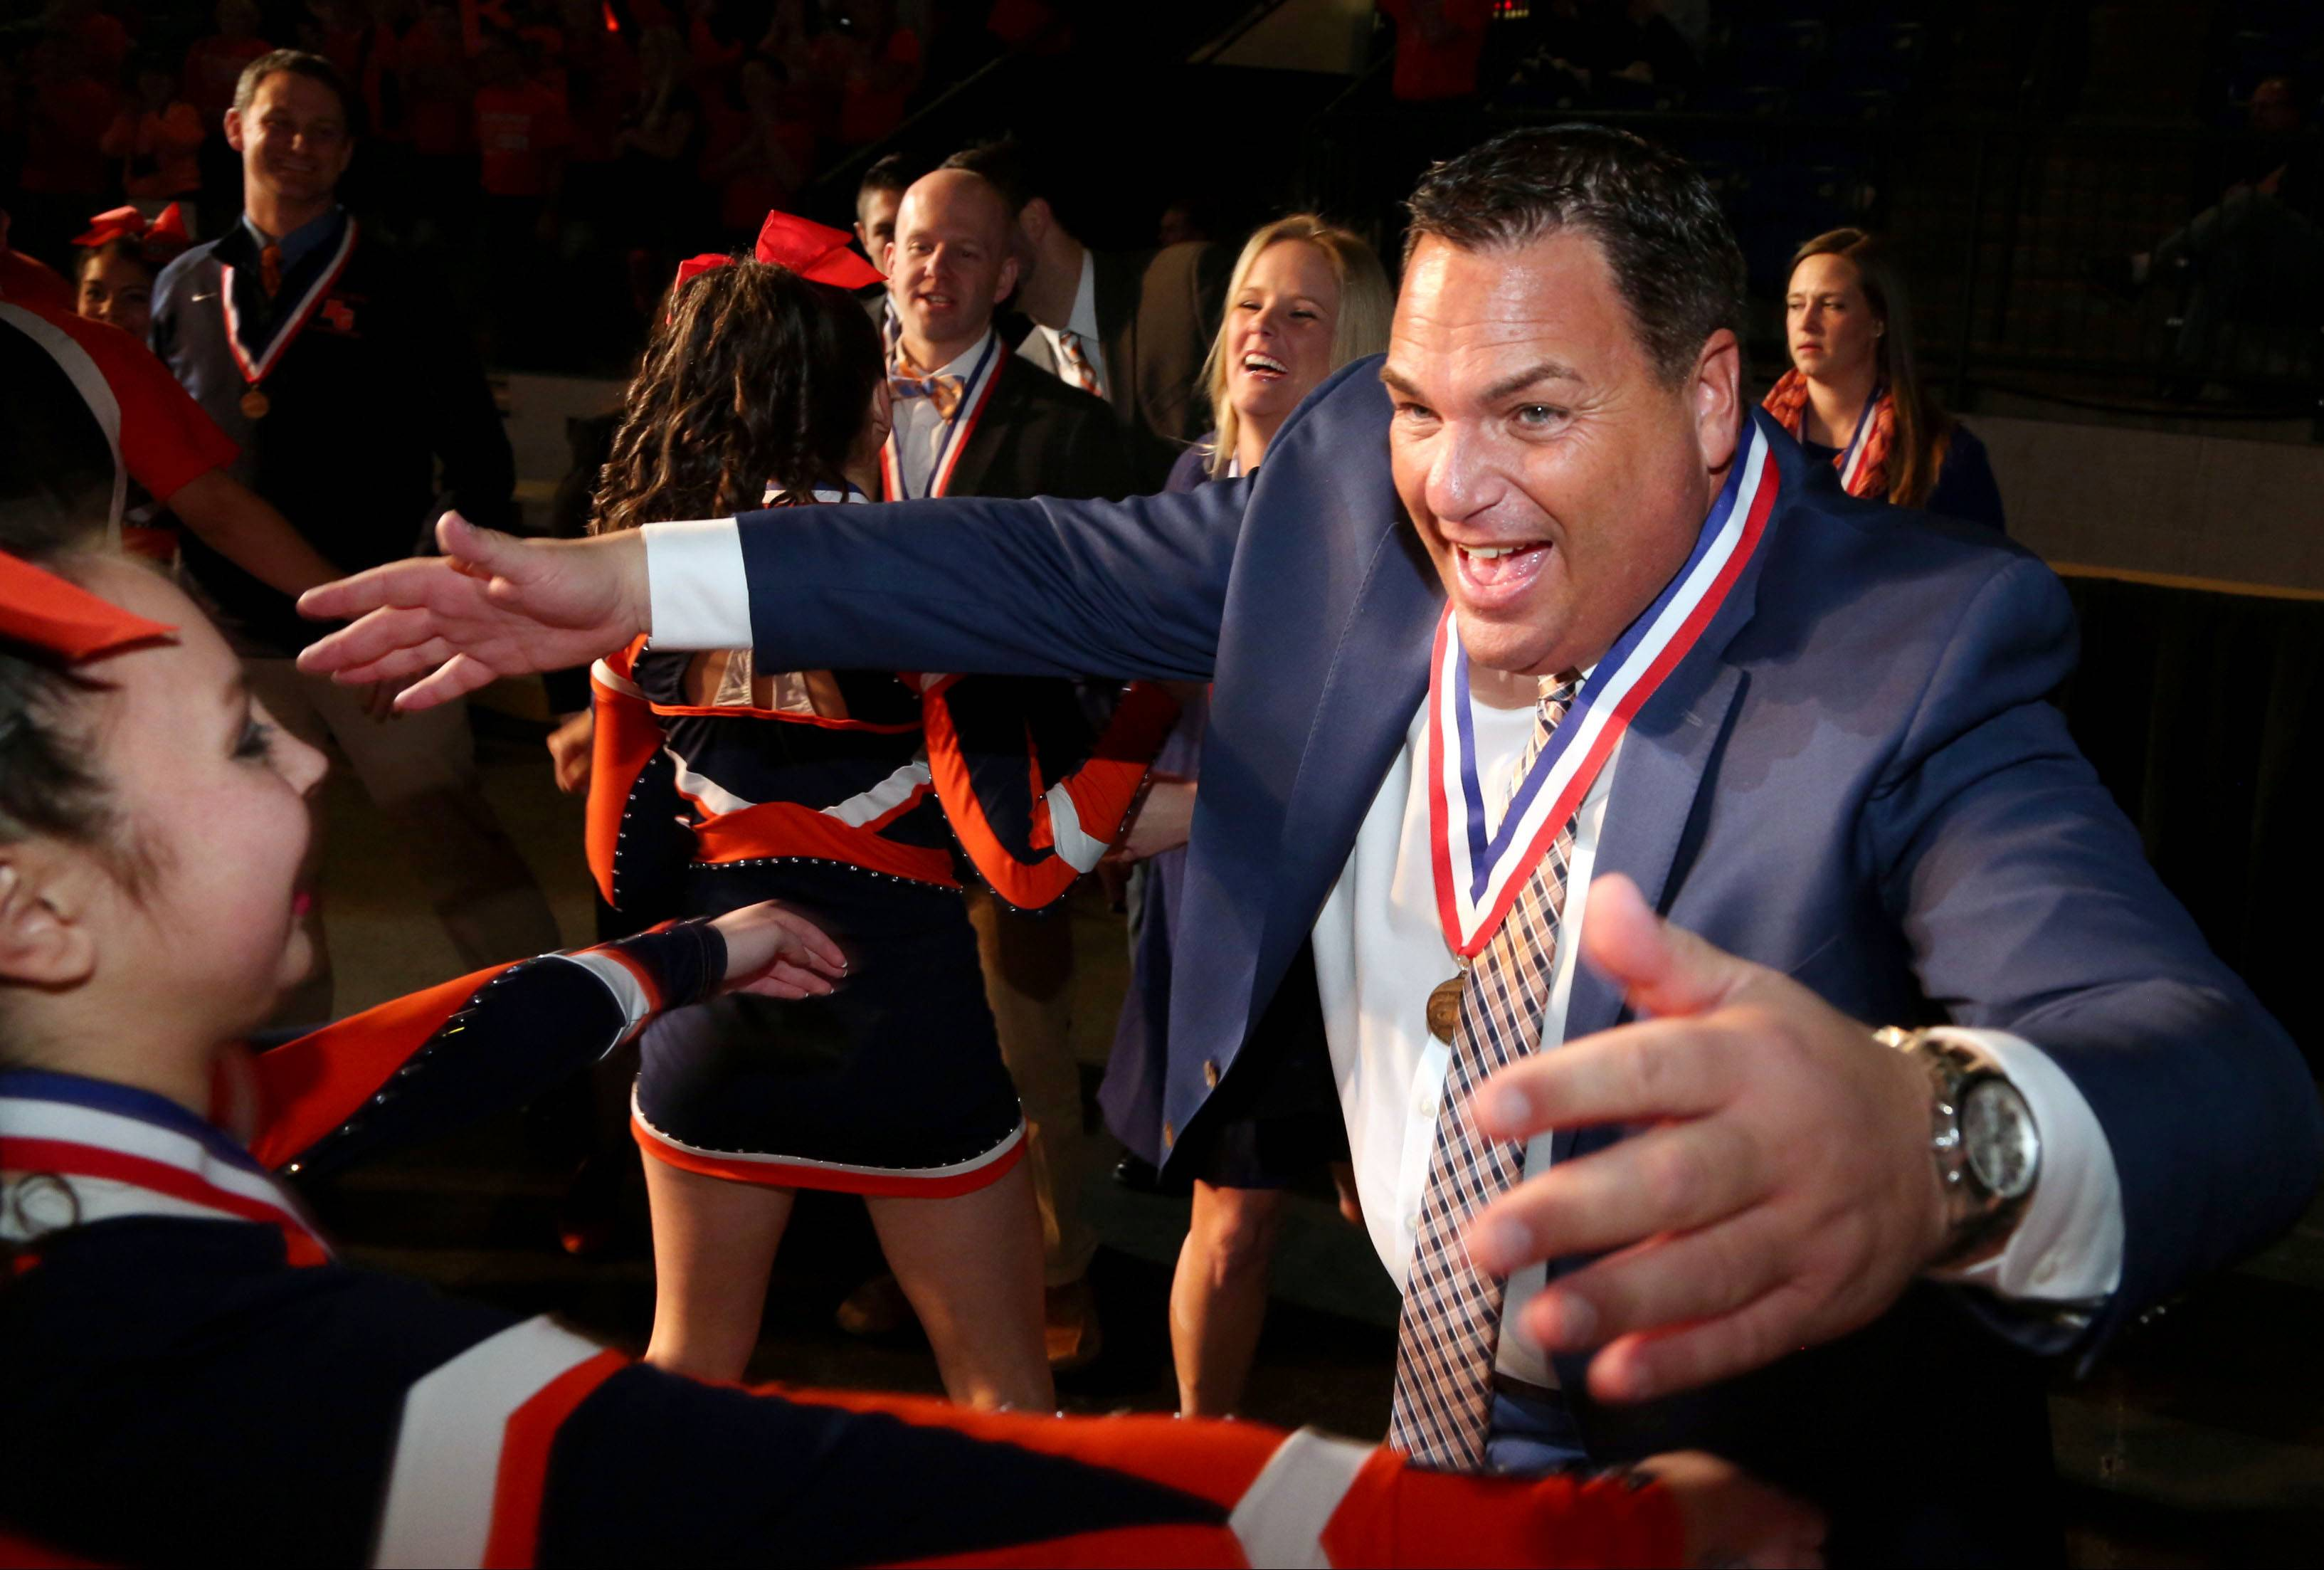 Buffalo Grove High School cheerleading coach Jeff Siegal celebrates in 2016 after his team won the state championship. Siegal was named coach of the year by a national organization this week.